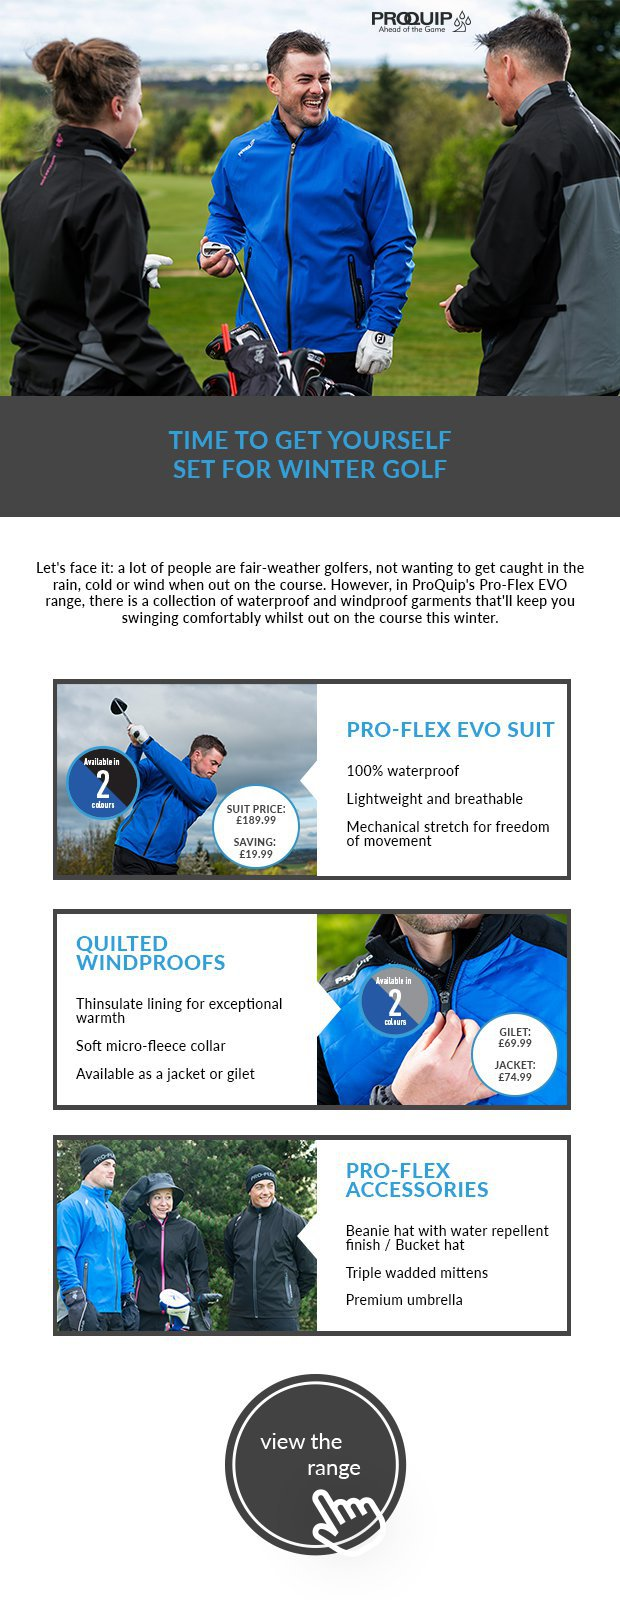 Let's face it: a lot of people are fair-weather golfers, not wanting to get caught in the rain, cold or wind when out on the course. However, in ProQuip's Pro-Flex EVO range, there is a collection of waterproof and windproof garments that'll keep you swinging comfortably whilst out on the course this winter.